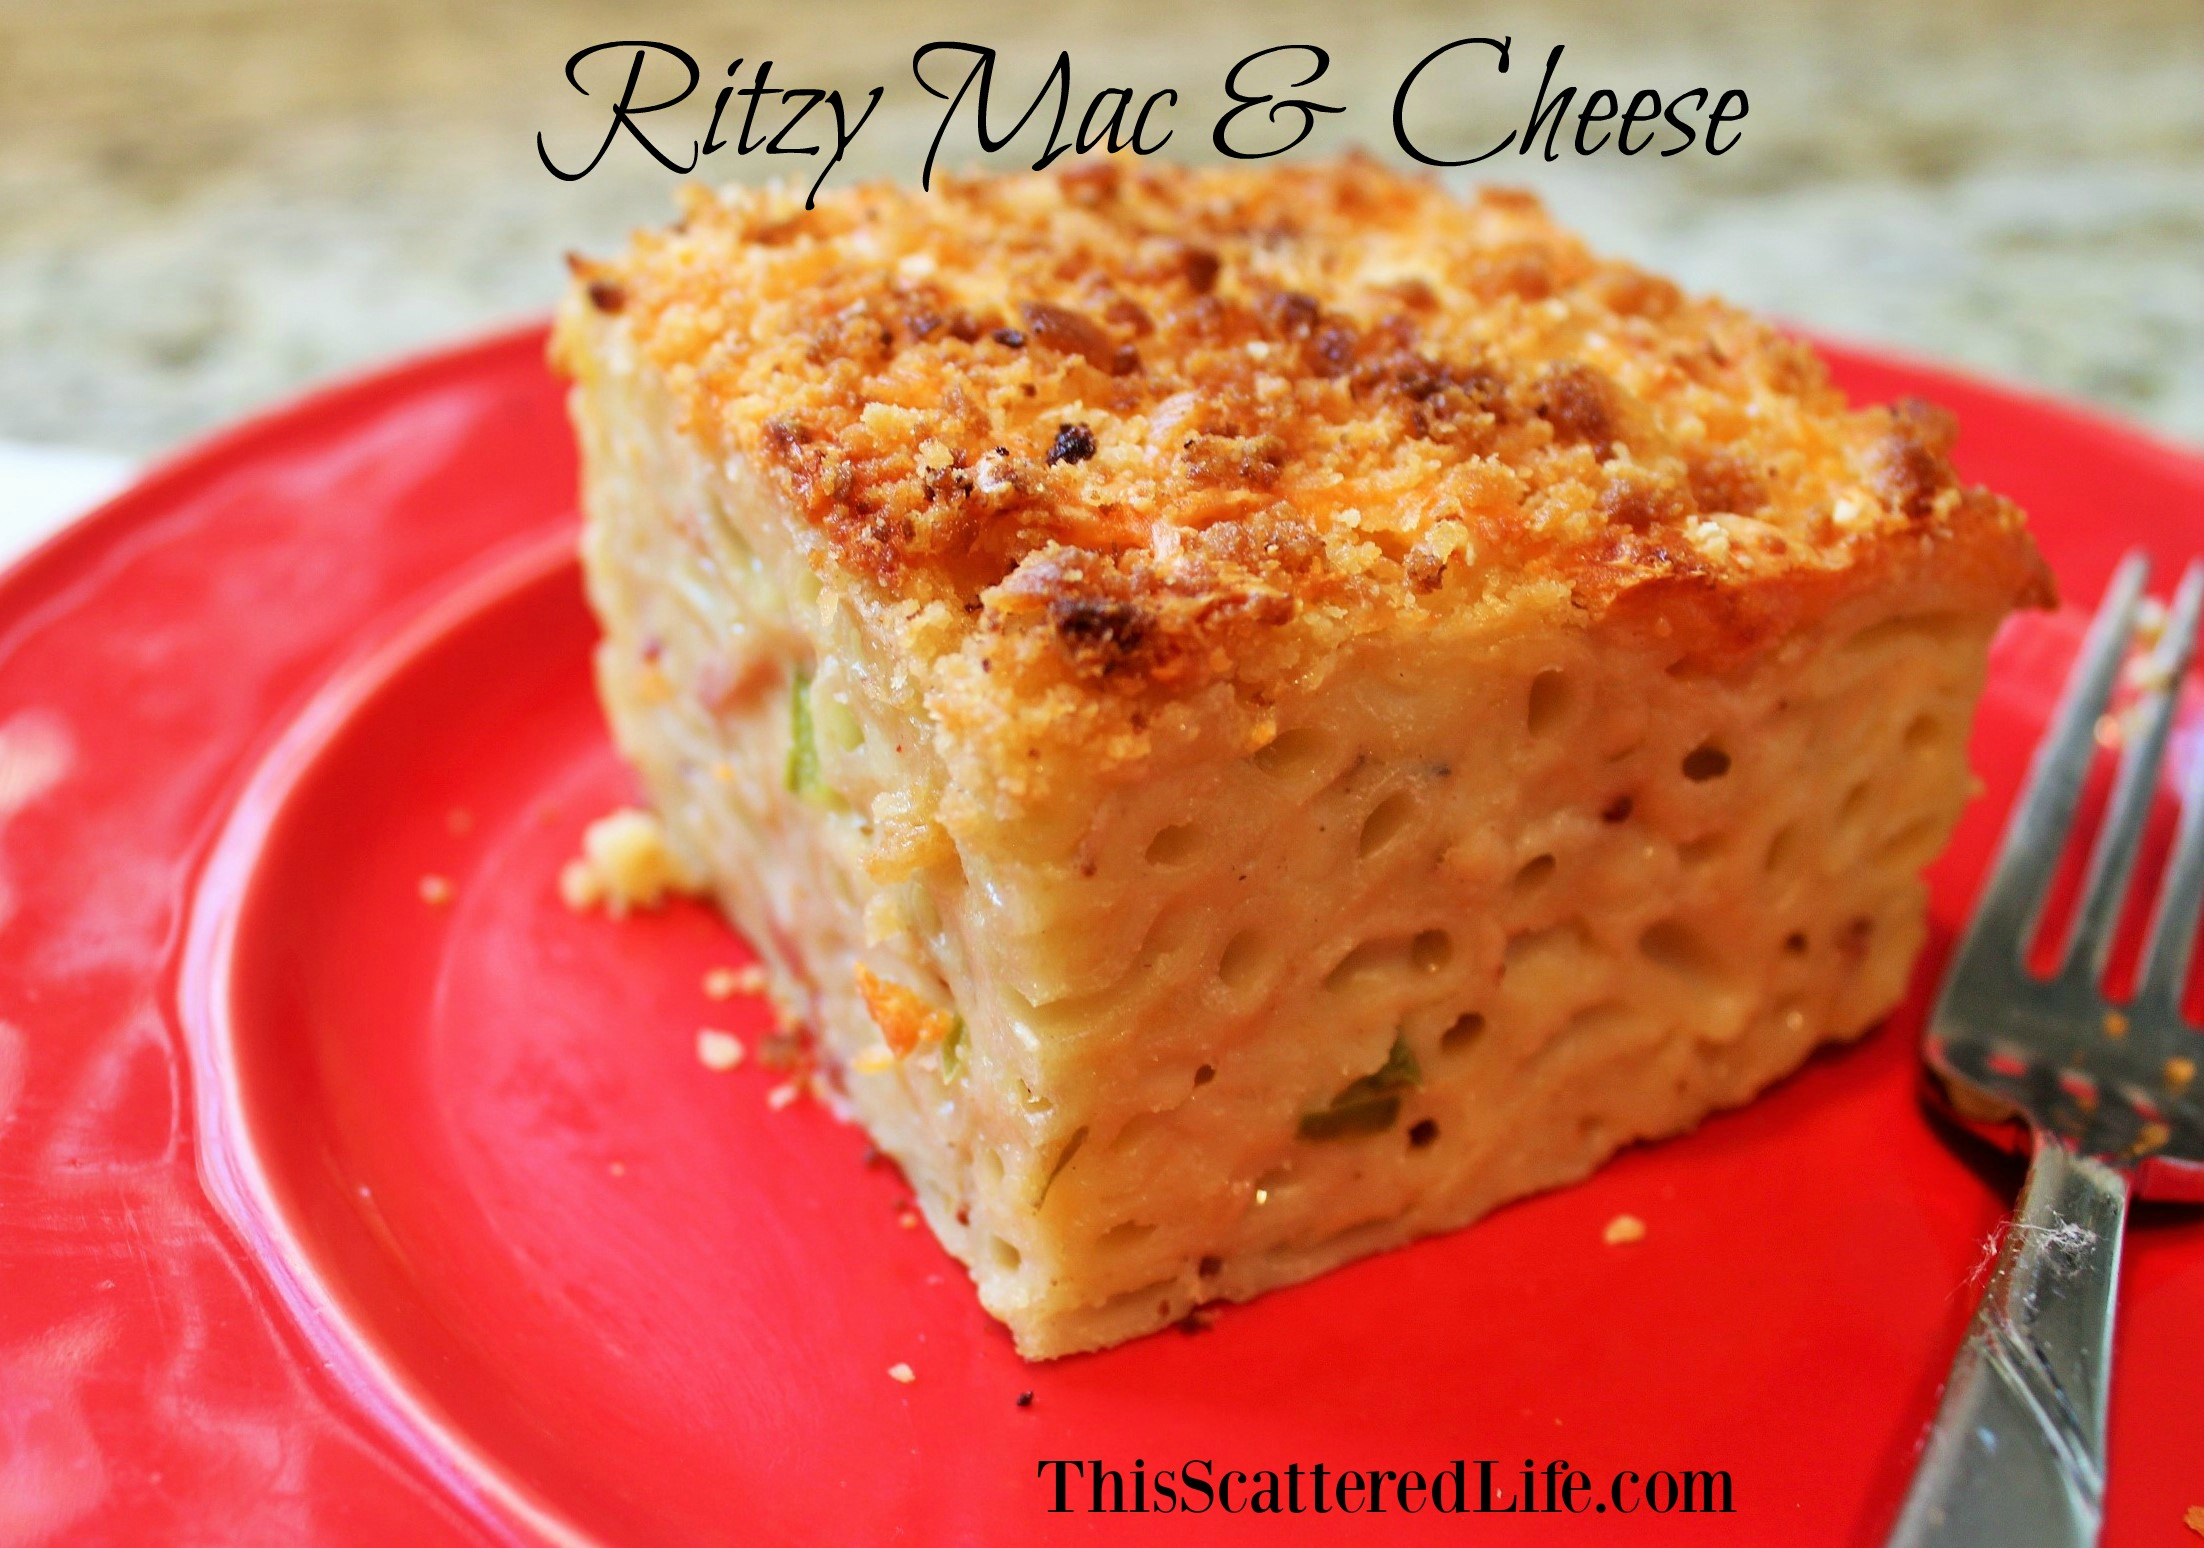 Ritzy Mac & Cheese